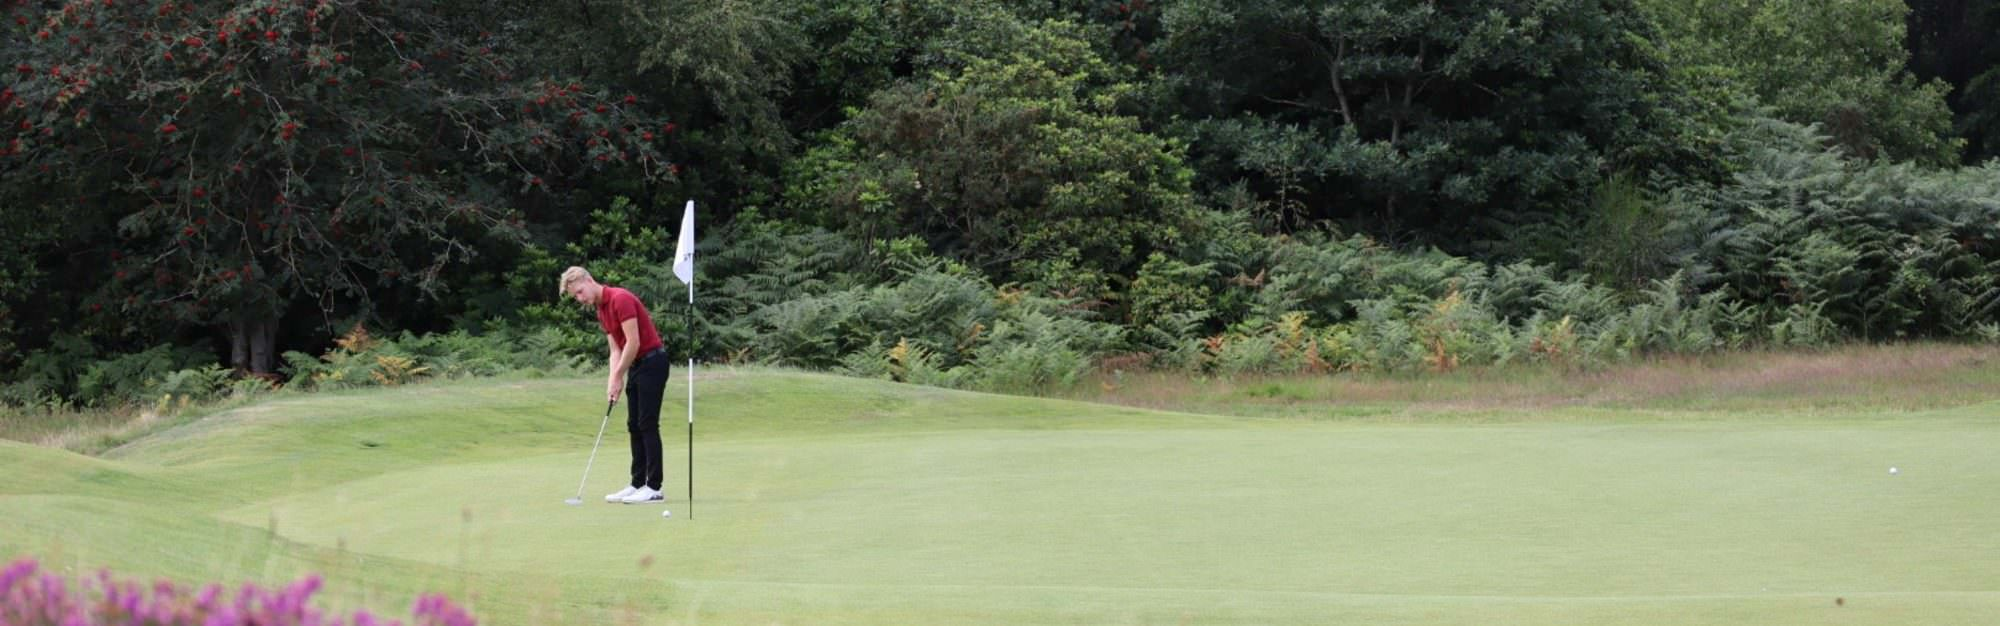 'It's almost invisible': How Woodhall Spa tackled golf's flagstick dilemma